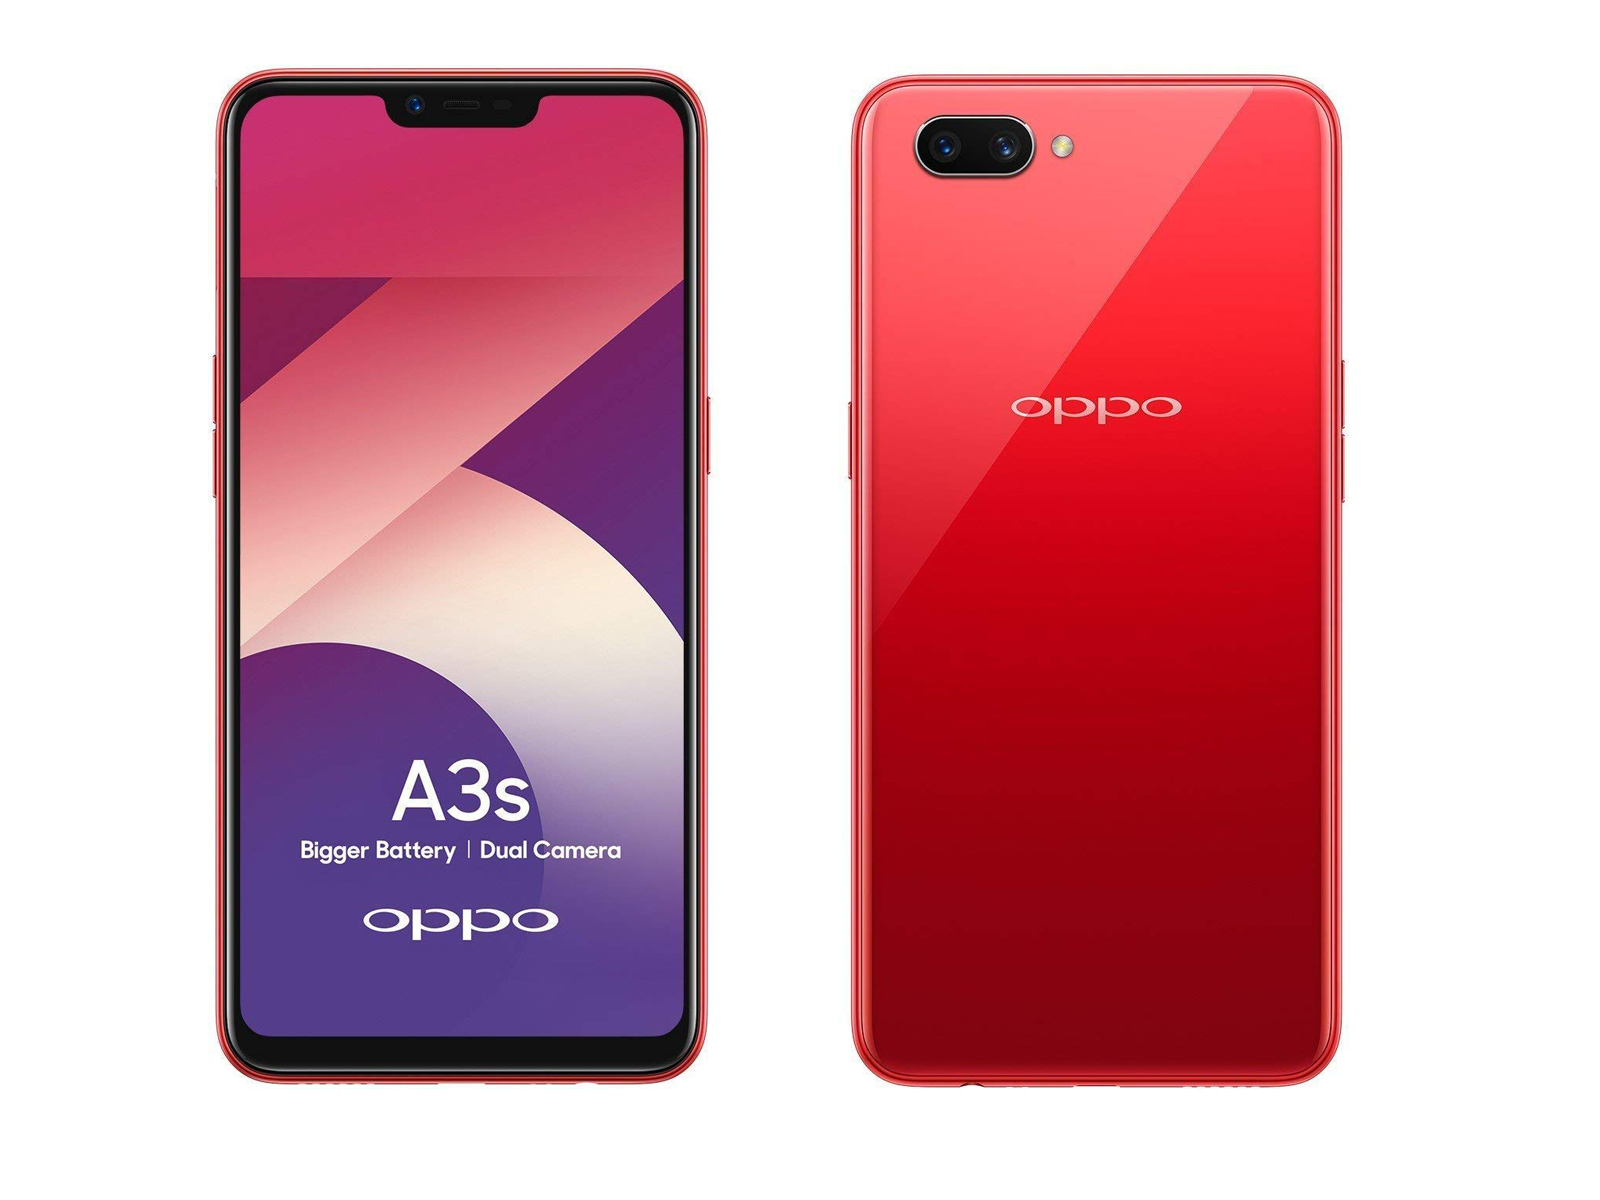 OPPO Mobile Phone A3s -3GB/32GB Memory